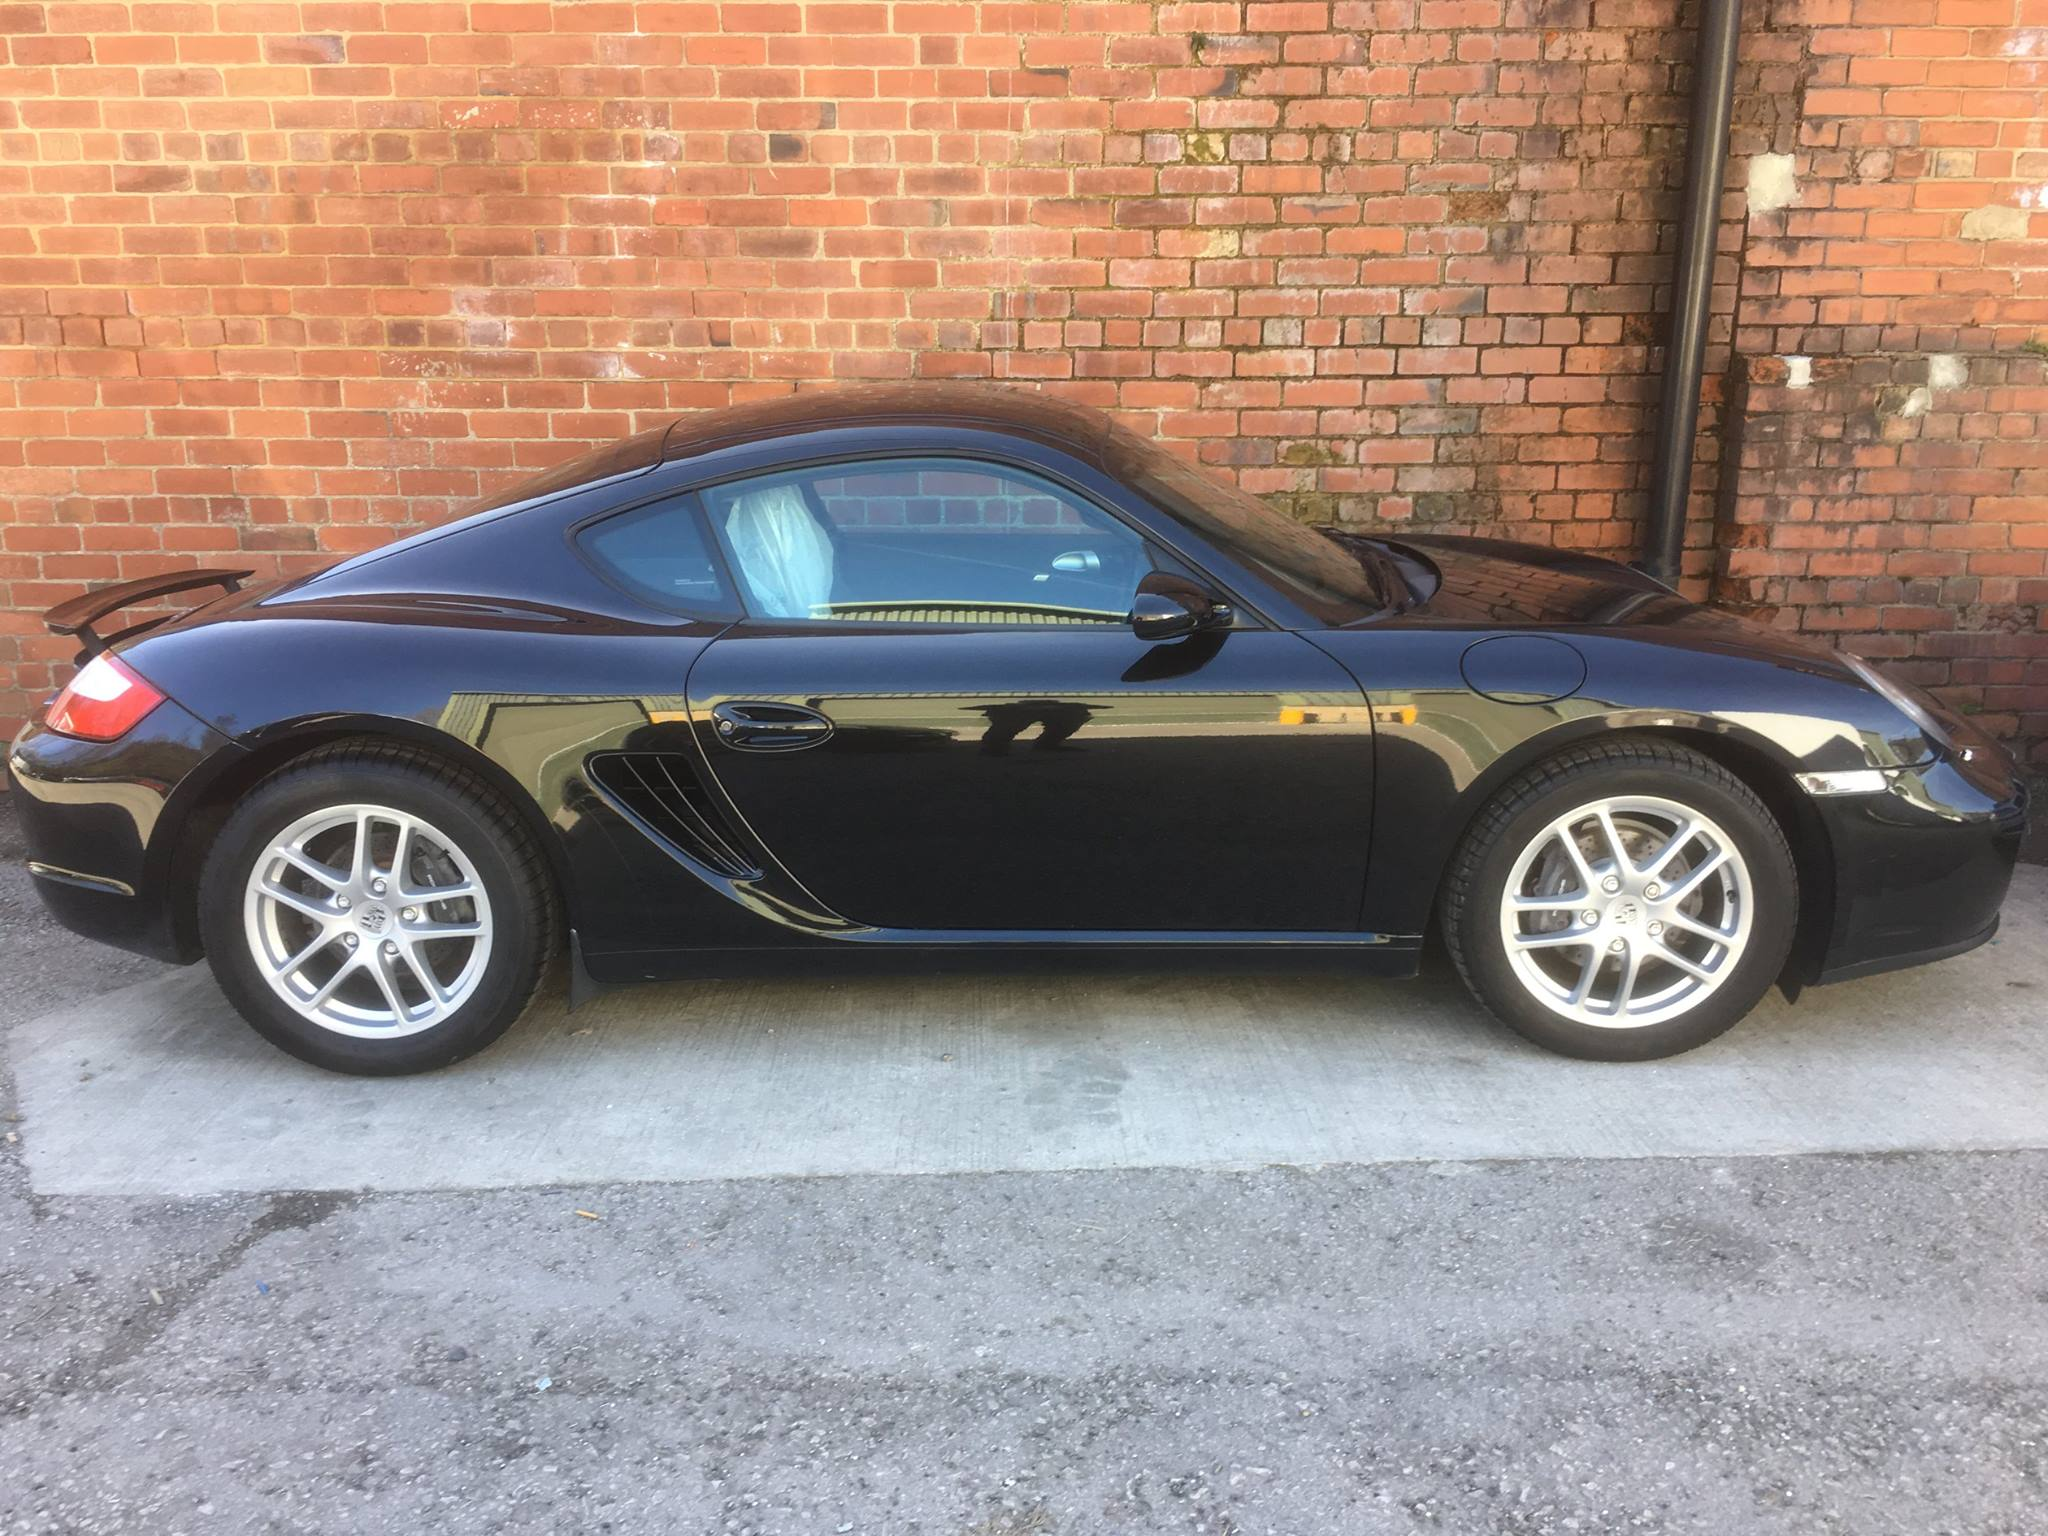 Extremely Well Maintained Cayman!